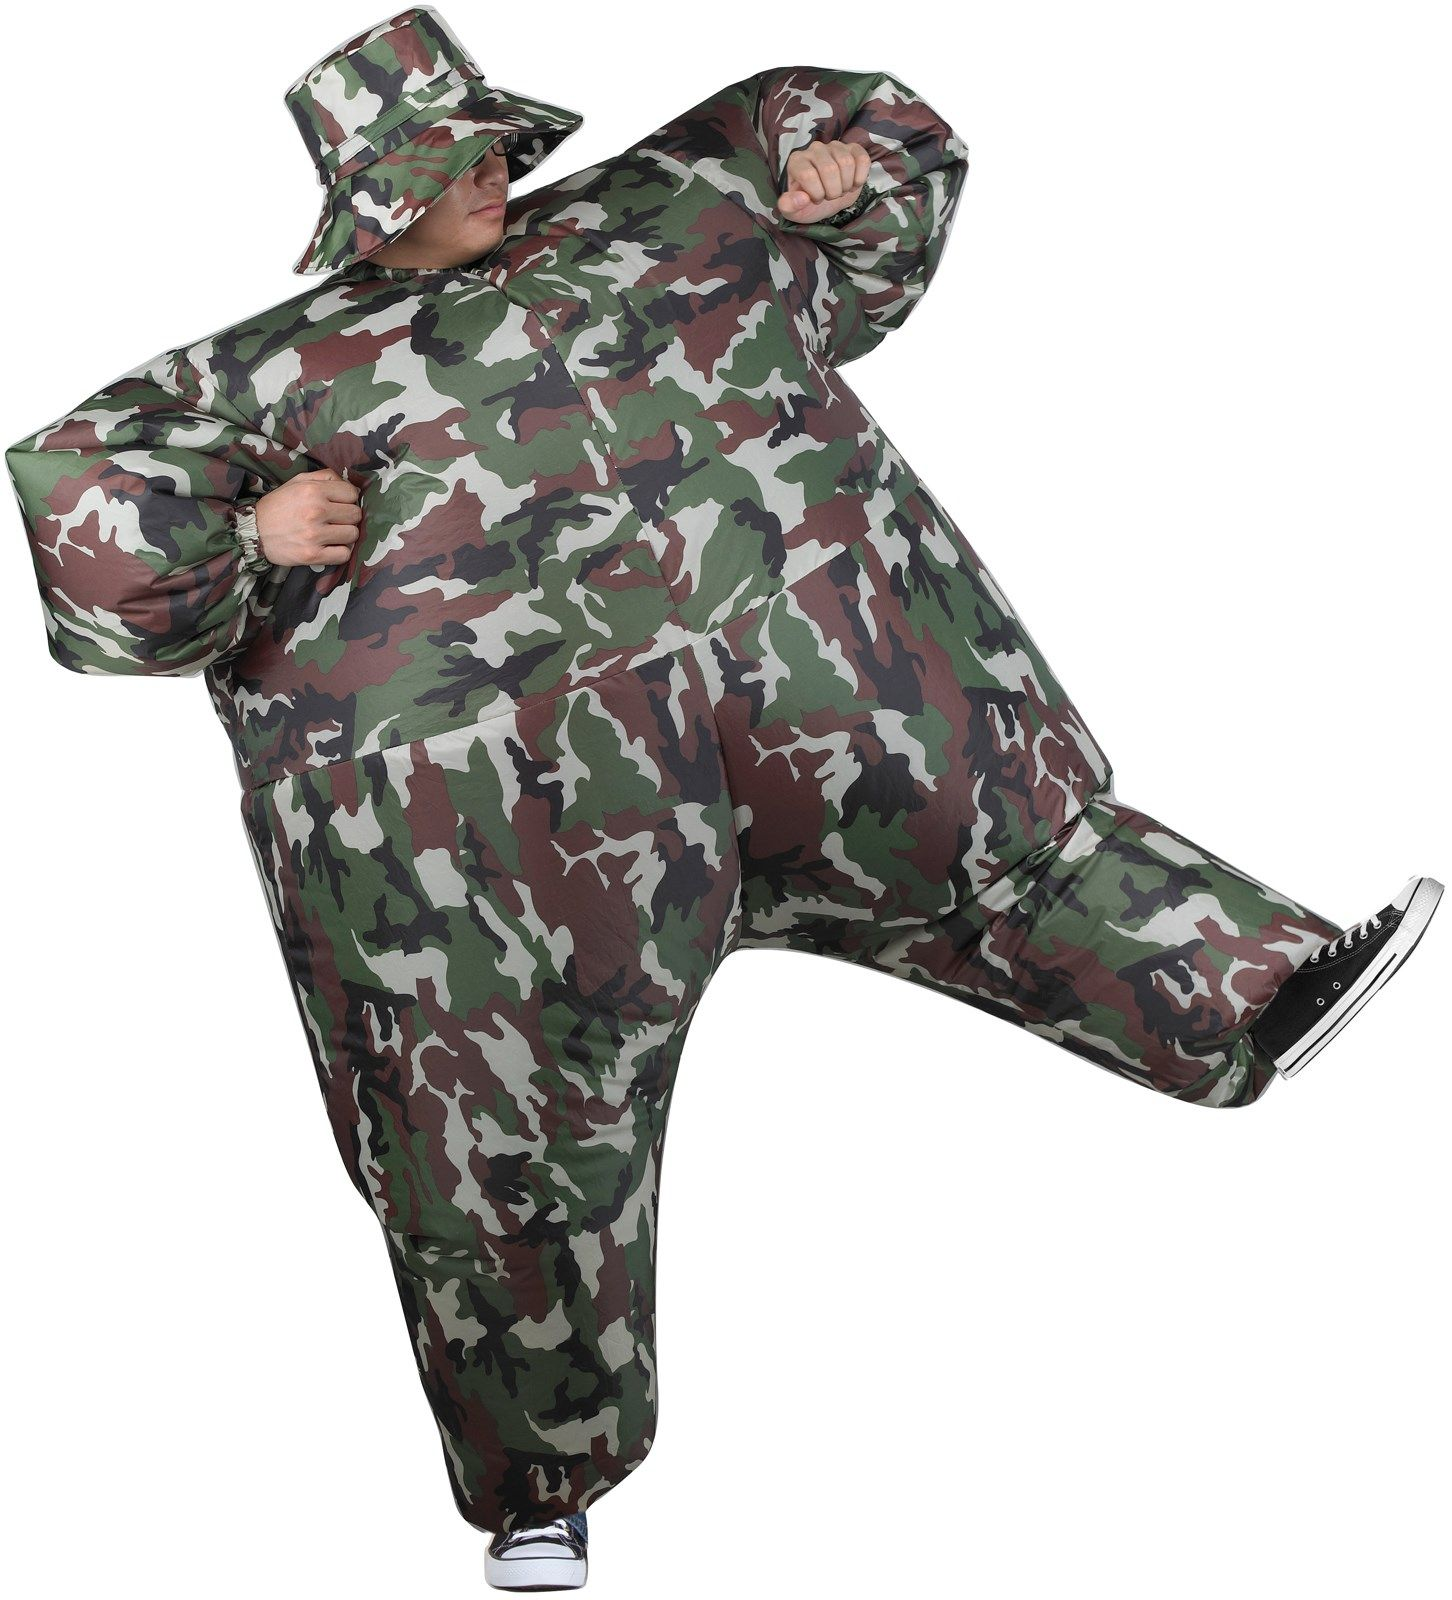 Inflatable Adult Camosuit Costume,InflatableAdult